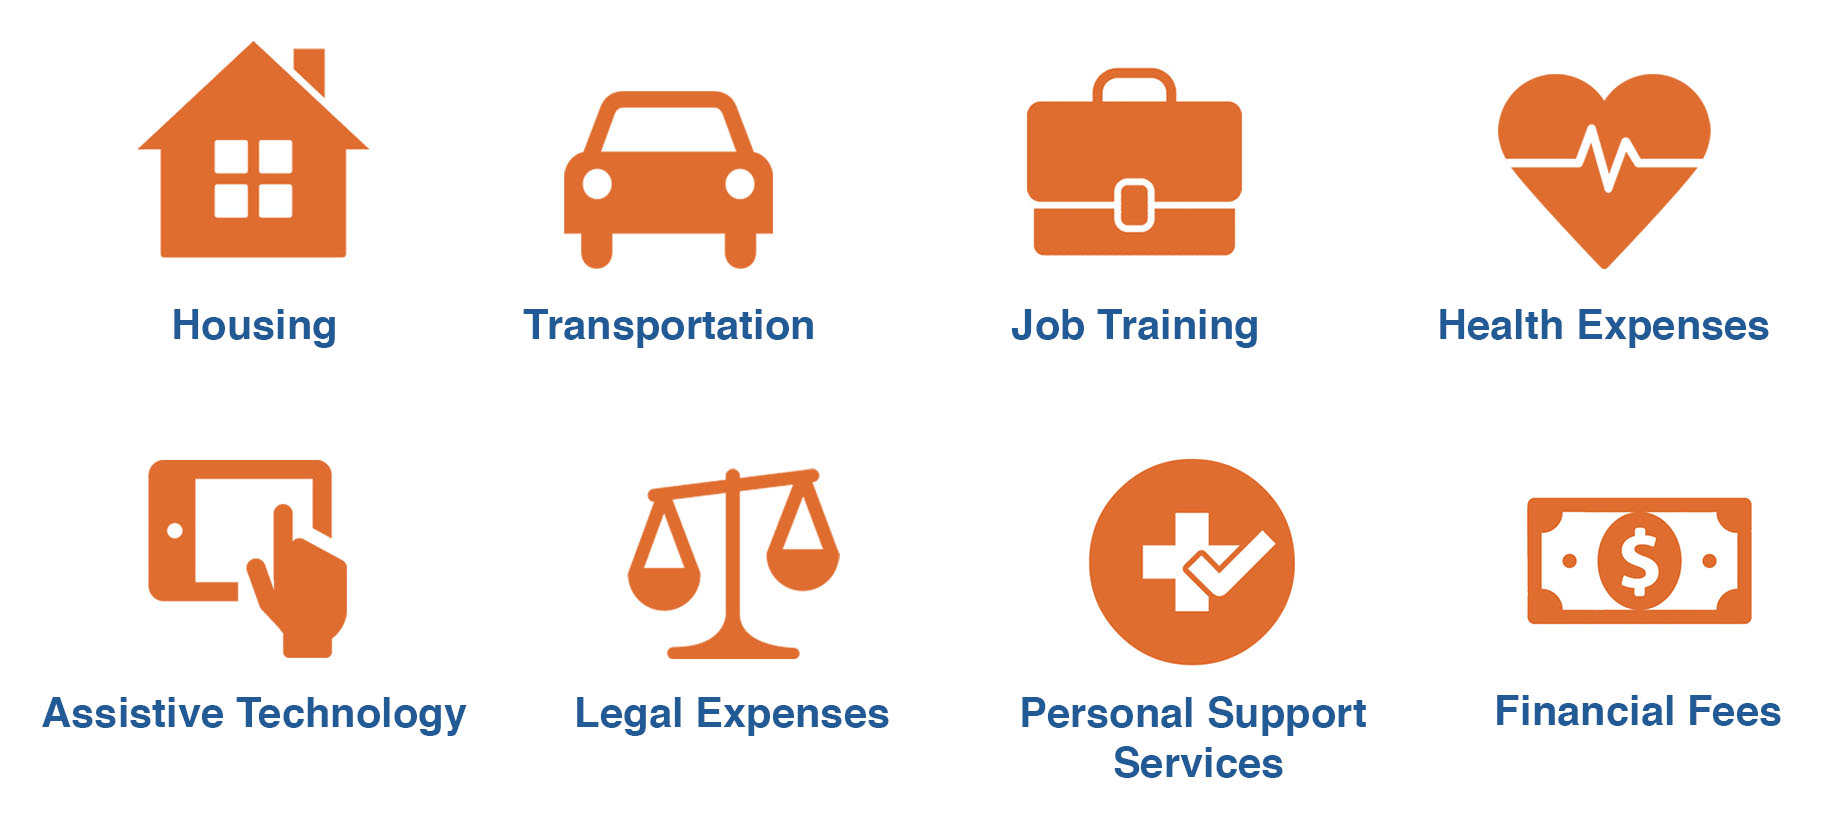 Image showing icons for the following expenses: Housing, Transportation, Job Training, Health Expenses, Assistive Technology, Legal Expenses, Personal Support Services, and Financial Fees.